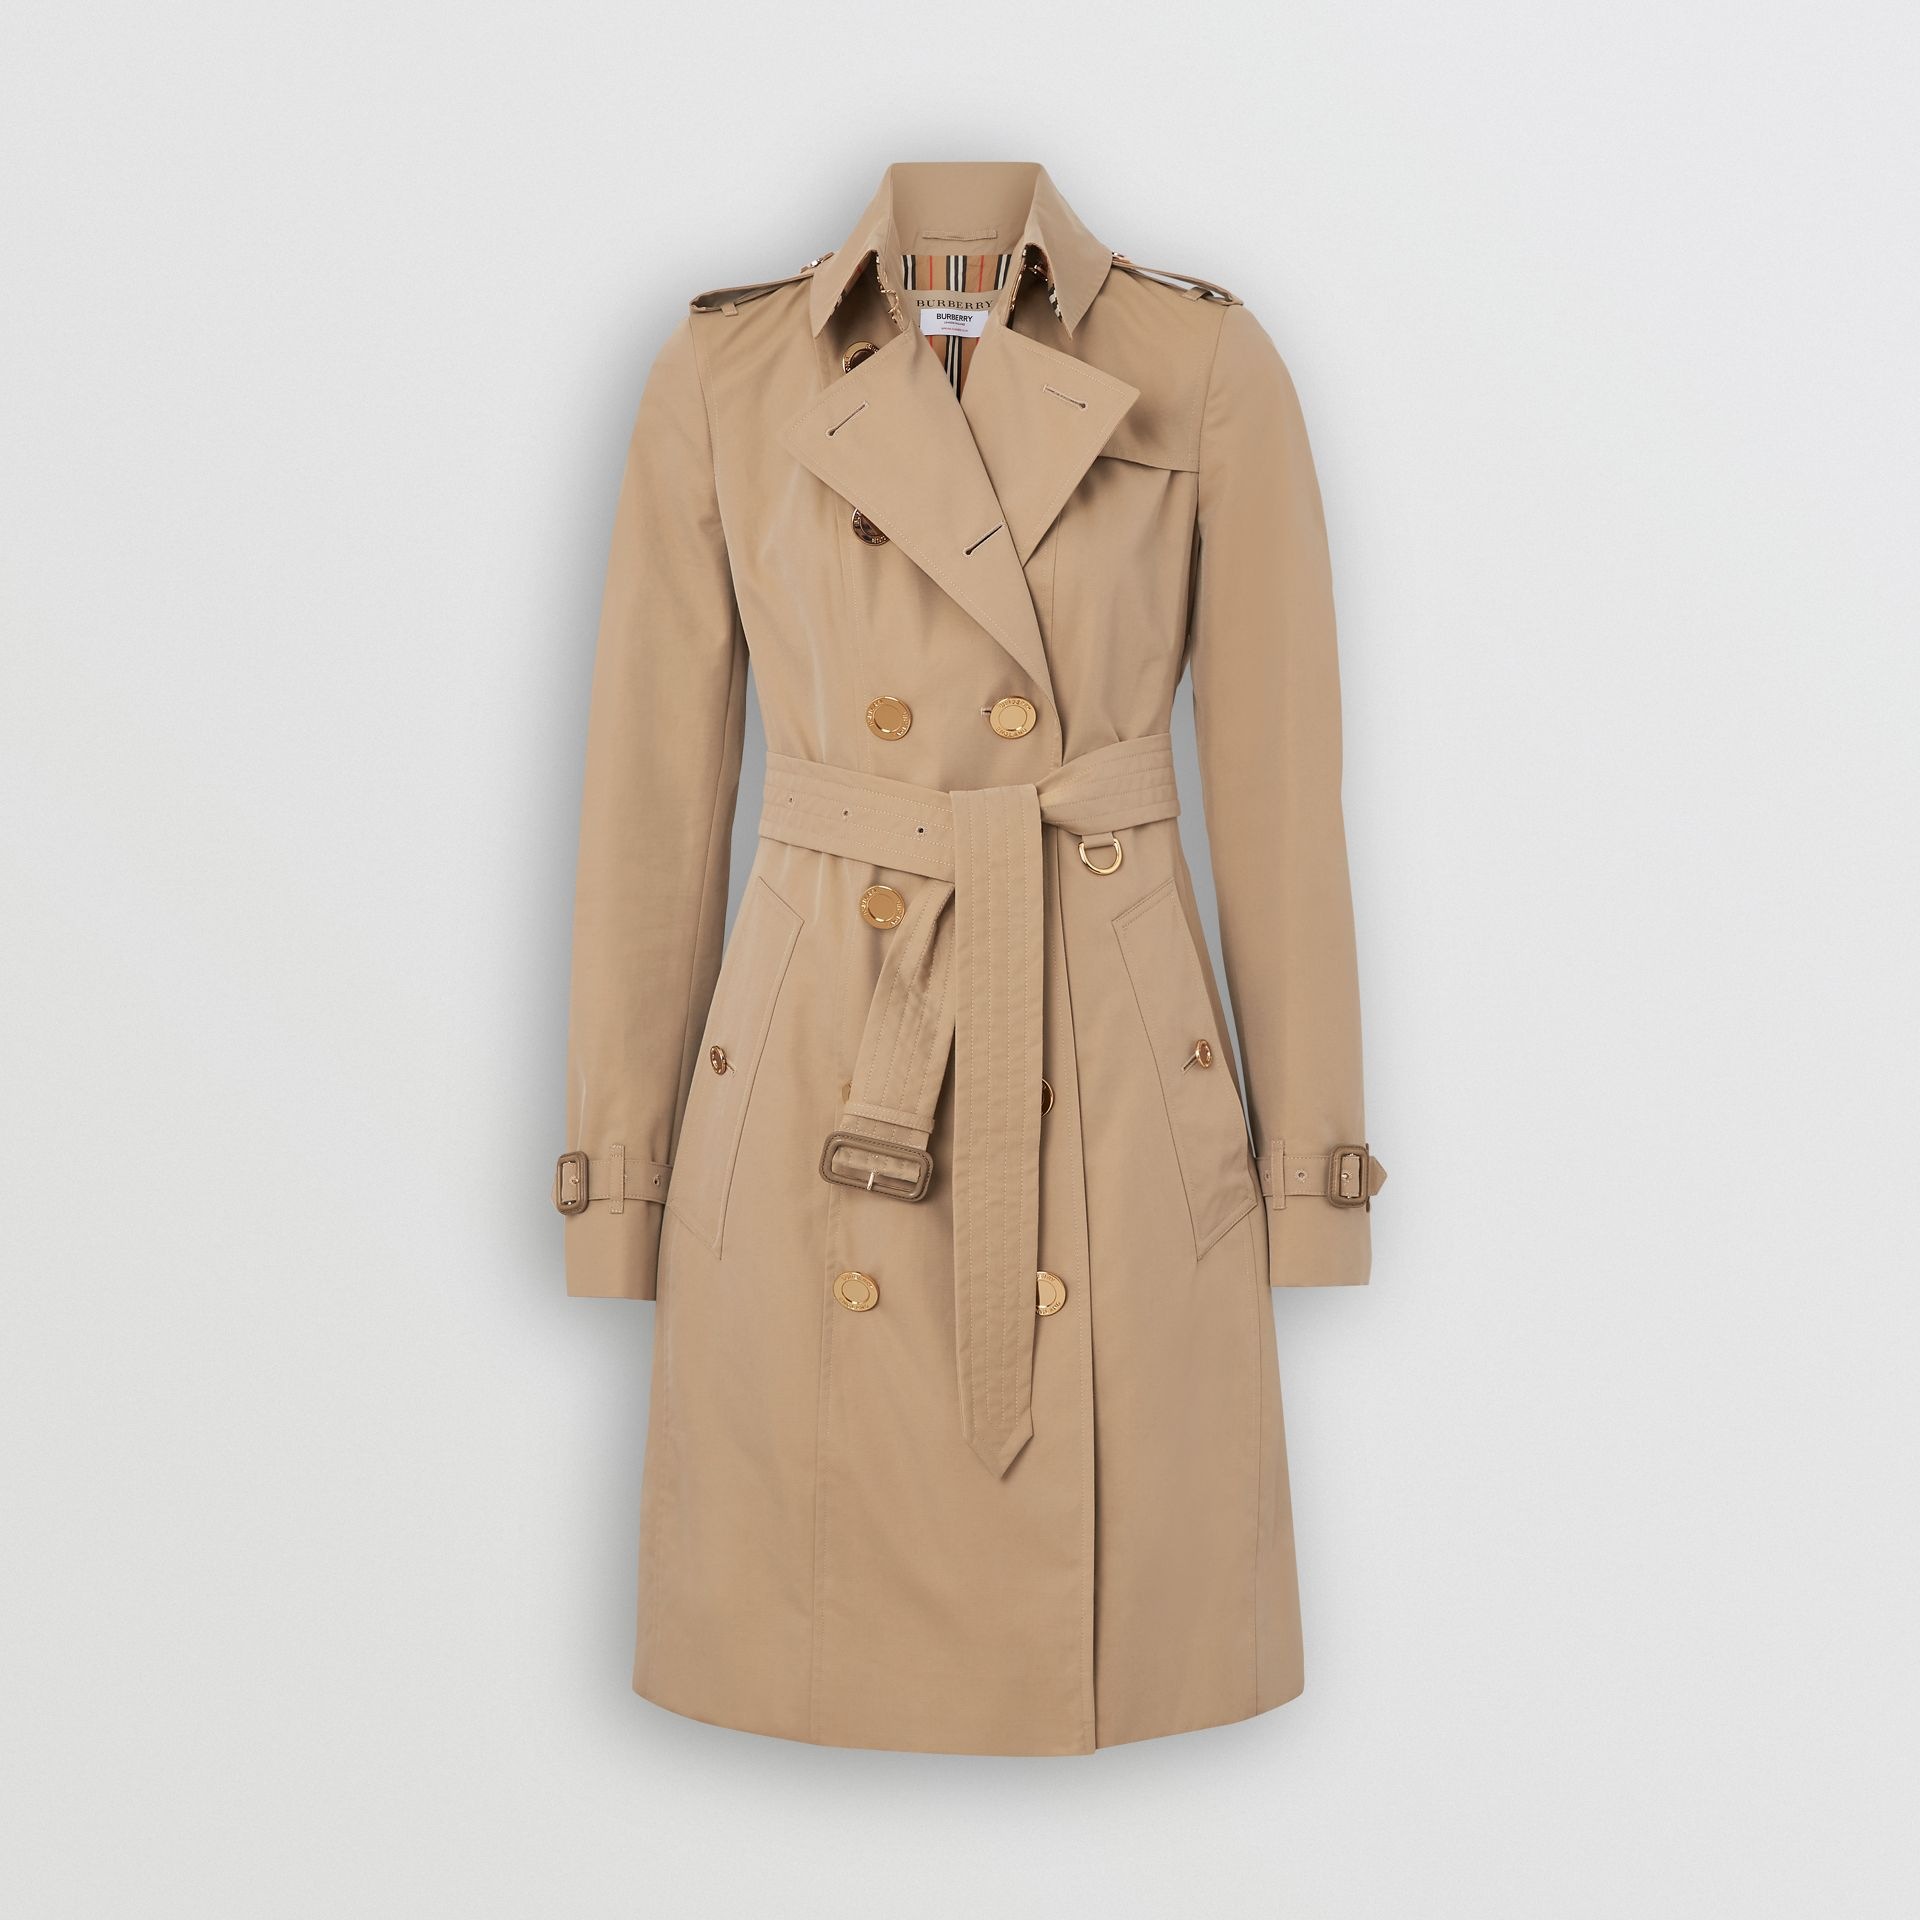 Gold Button Cotton Gabardine Trench Coat in Honey - Women | Burberry United Kingdom - gallery image 3